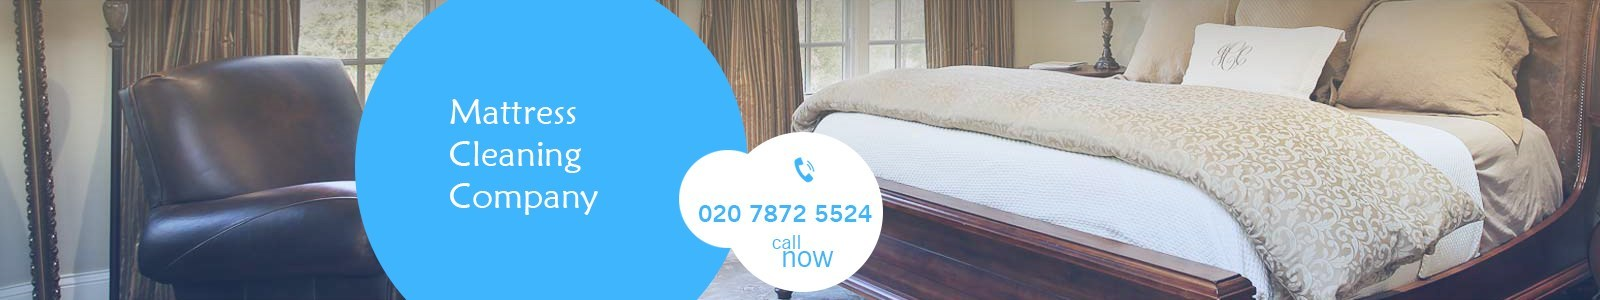 Mattress Cleaning Company